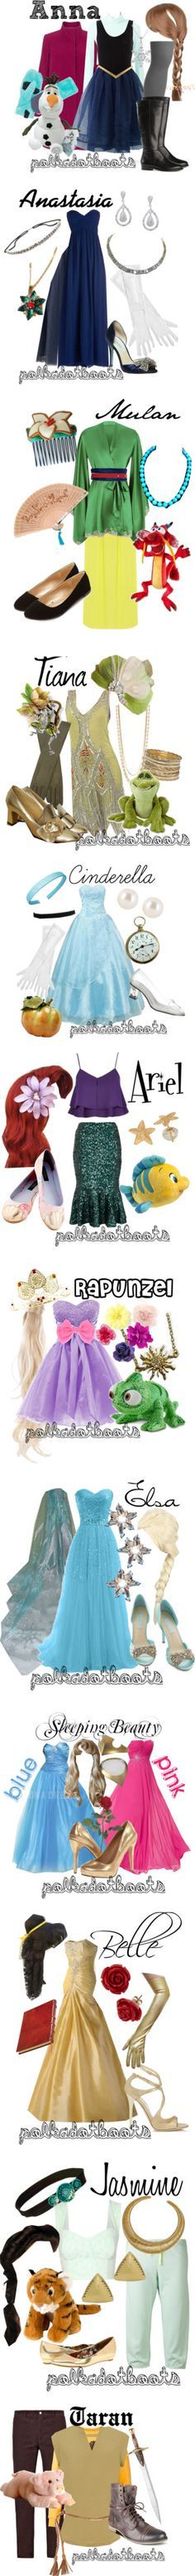 """""""Disney Halloween Costumes"""" by polkadotboots ❤ liked on Polyvore"""